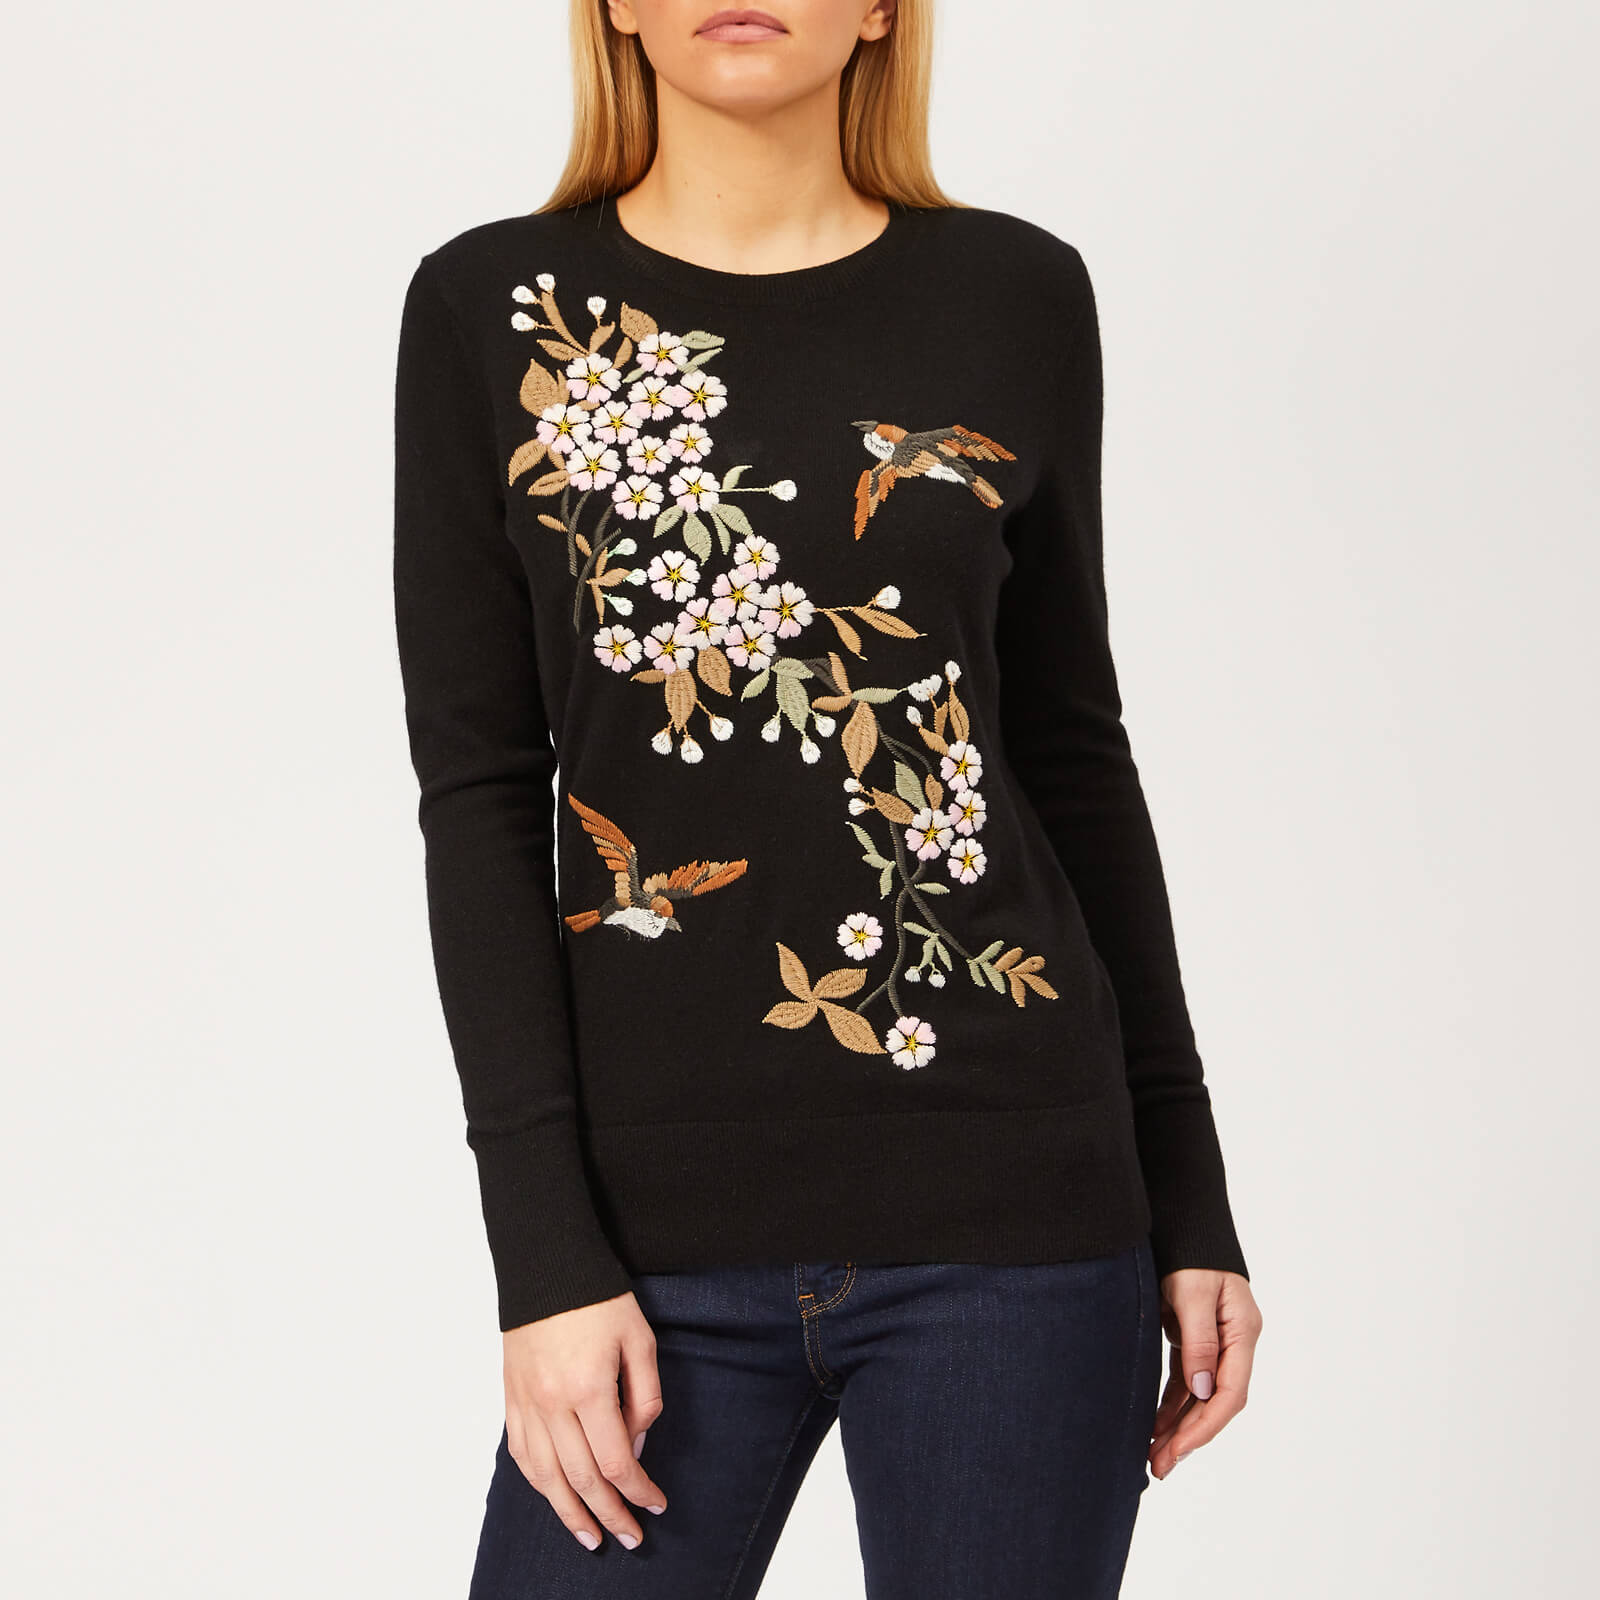 c2003e2b938 Ted Baker Women's Helliah Graceful Embroidery Jumper - Black Womens  Clothing | TheHut.com